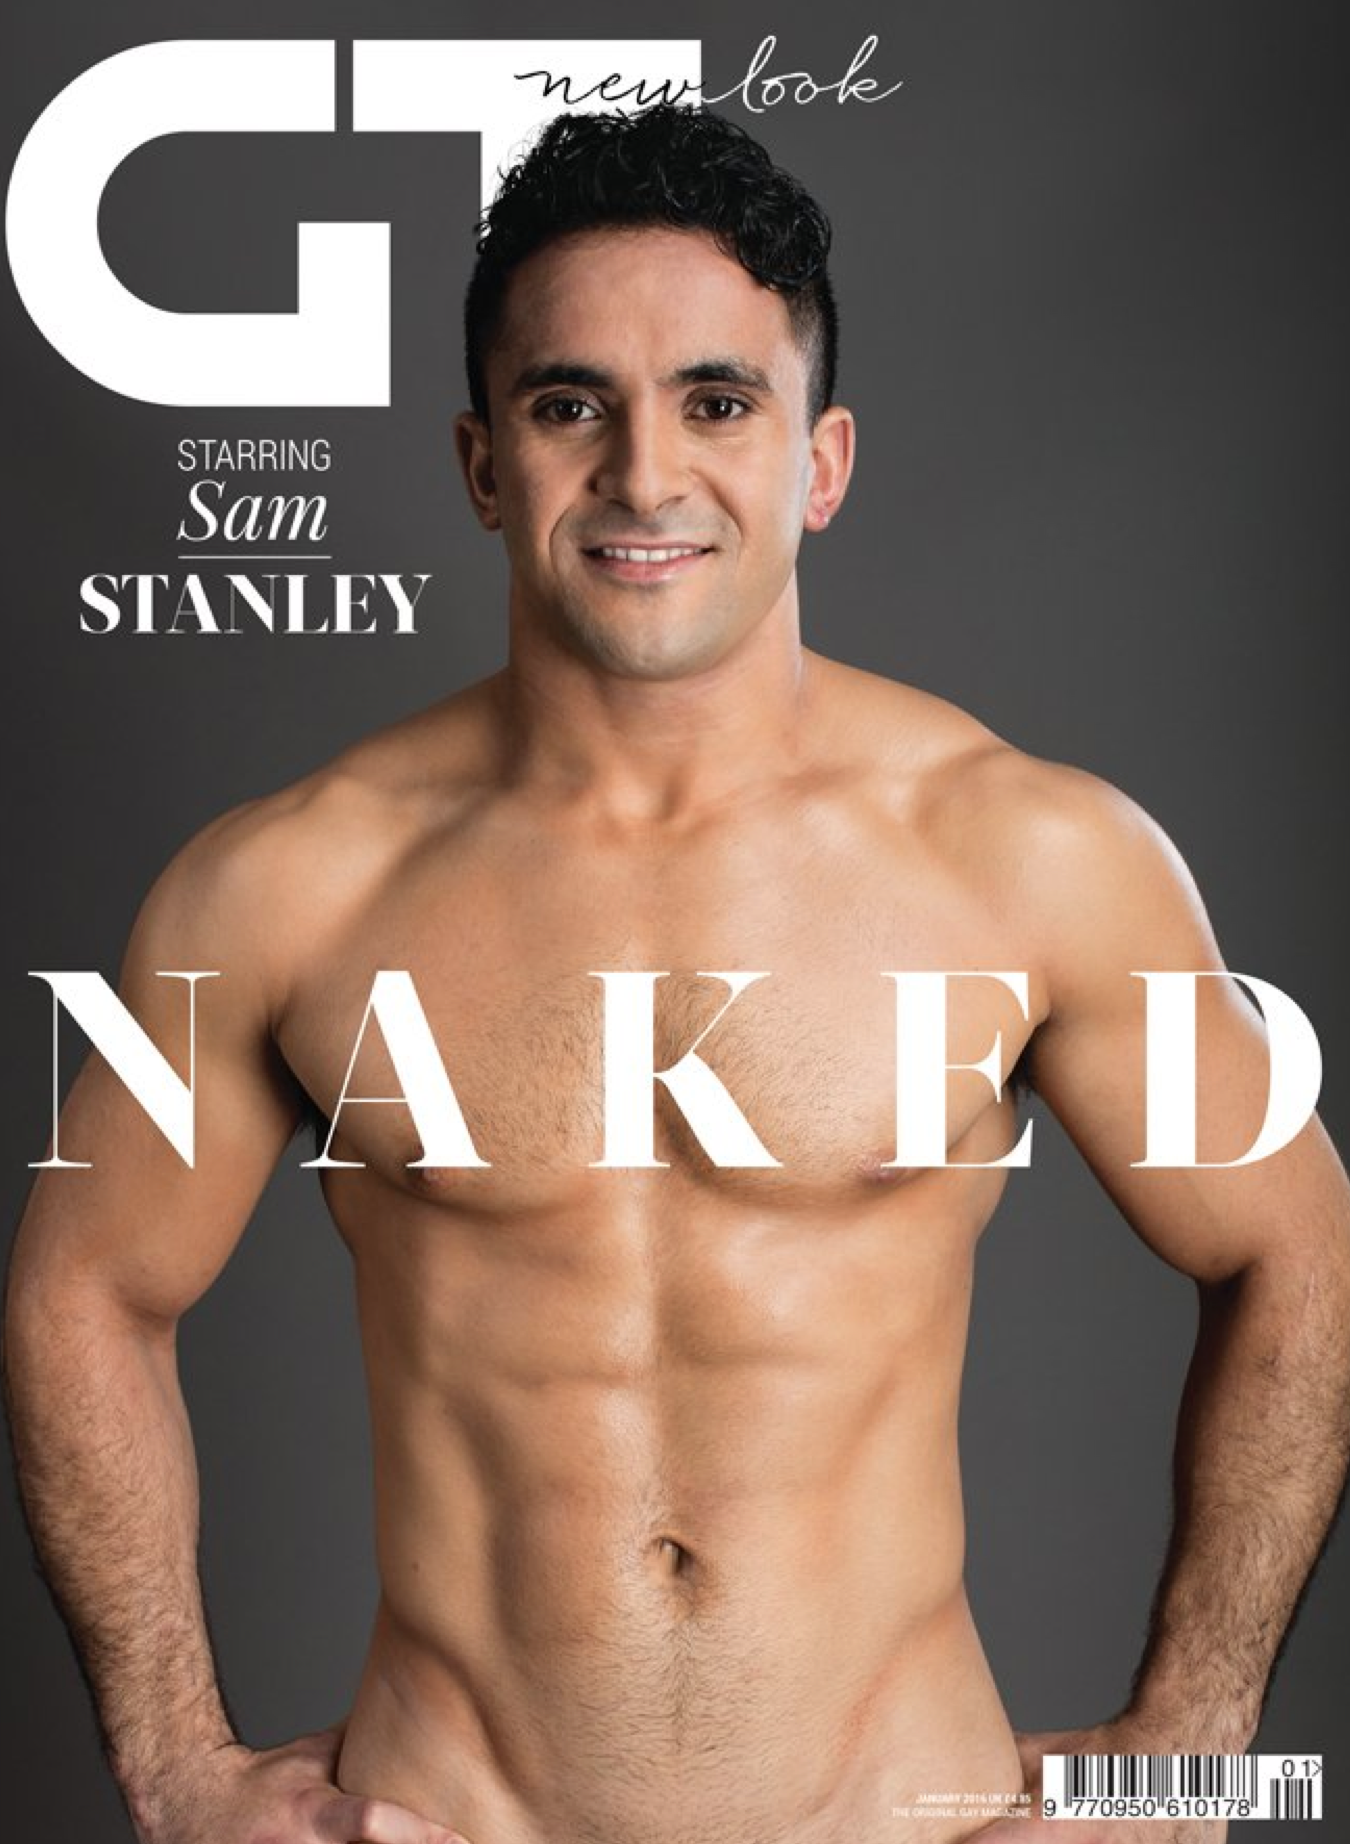 Gay Naked Photos